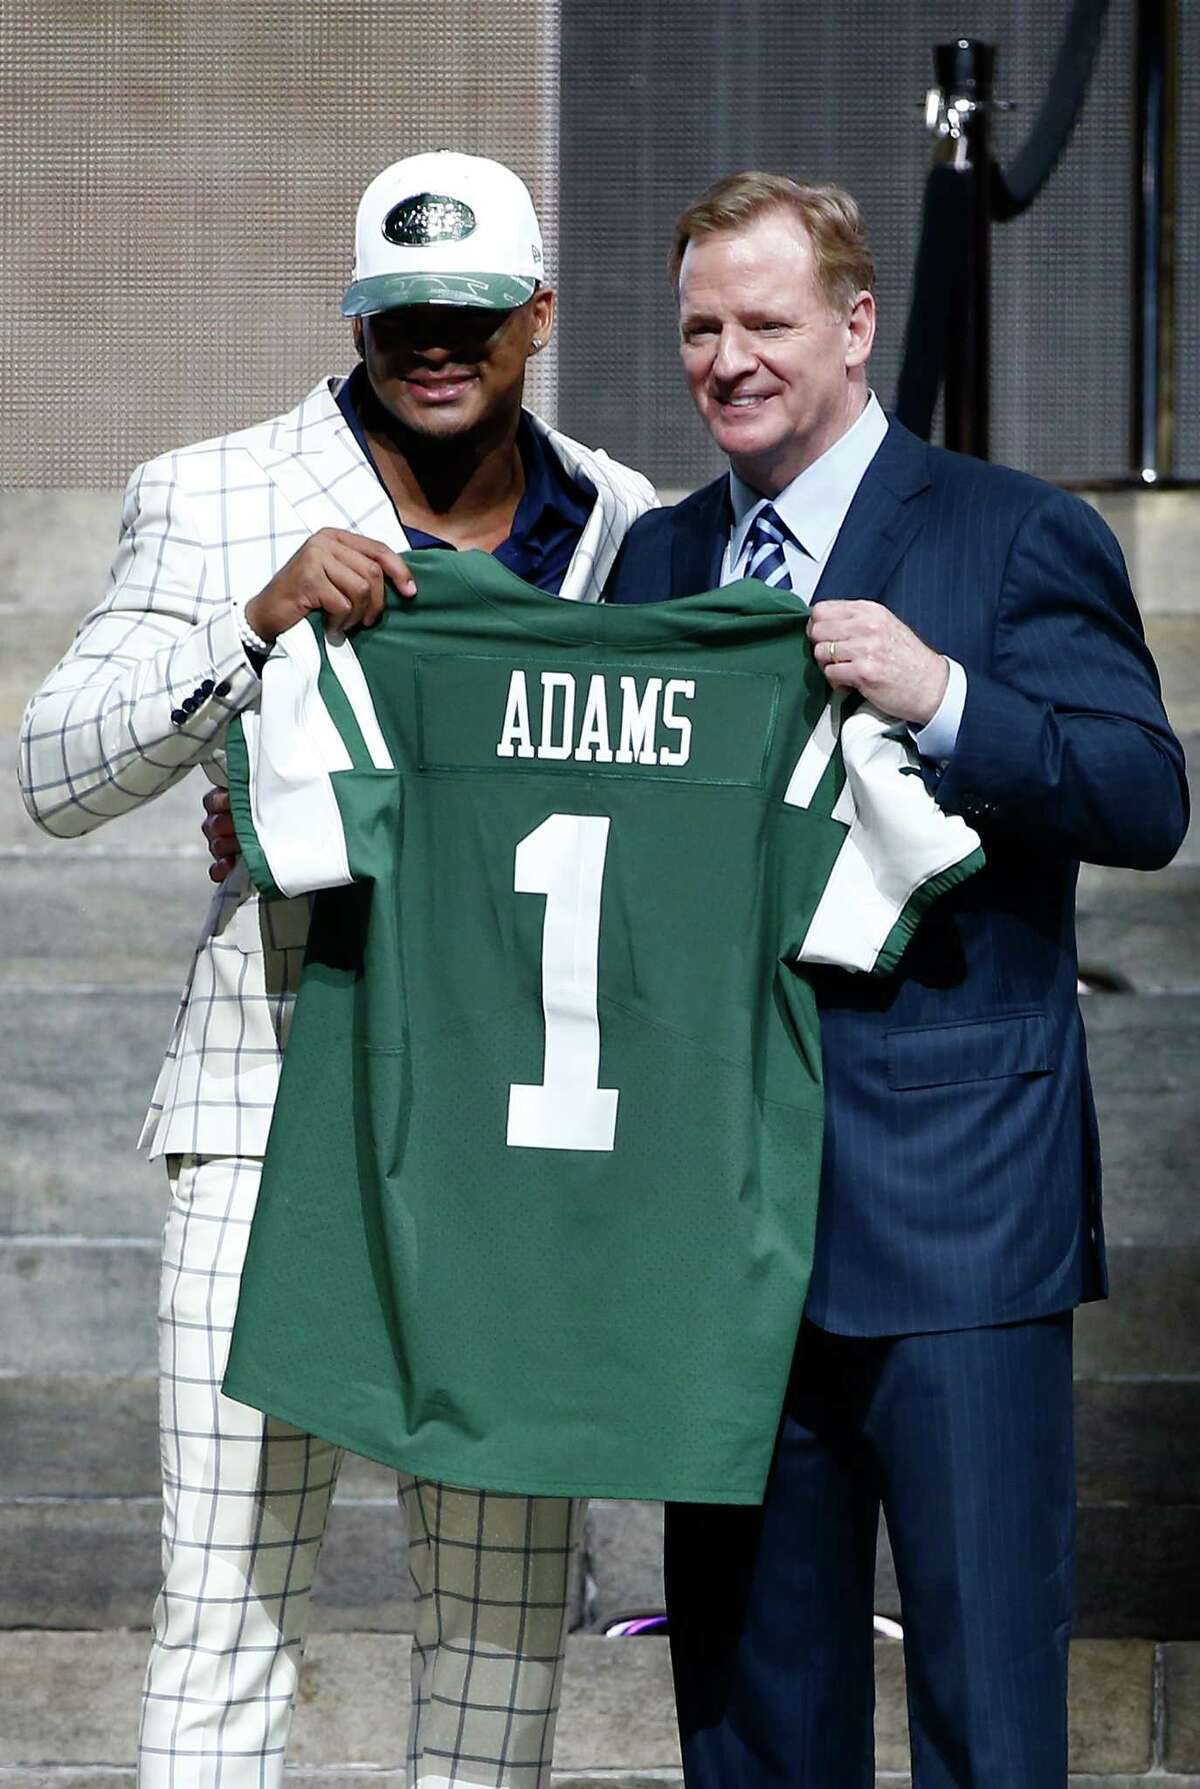 PHILADELPHIA, PA - APRIL 27: (L-R) Jamal Adams of LSU poses with Commissioner of the National Football League Roger Goodell after being picked #6 overall by the New York Jets during the first round of the 2017 NFL Draft at the Philadelphia Museum of Art on April 27, 2017 in Philadelphia, Pennsylvania. (Photo by Jeff Zelevansky/Getty Images) ORG XMIT: 700030902